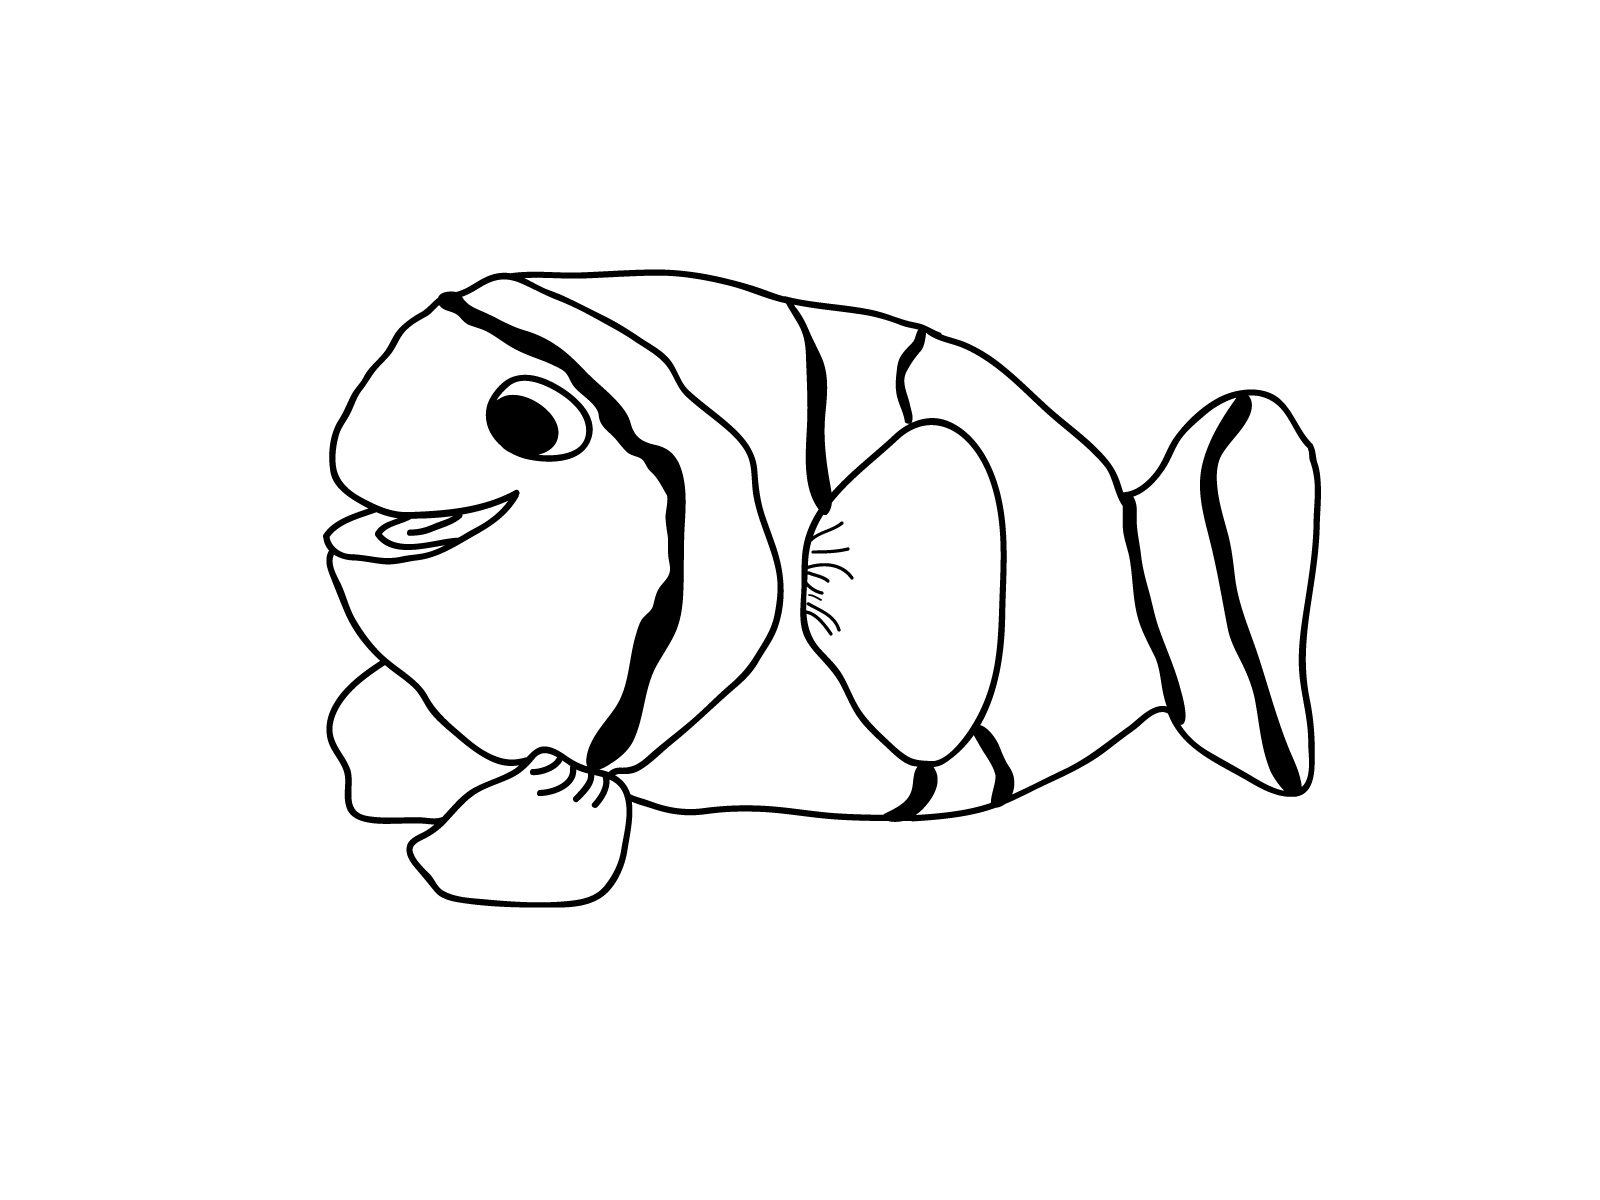 Cute Fish Coloring Pages | Clipart Panda - Free Clipart Images